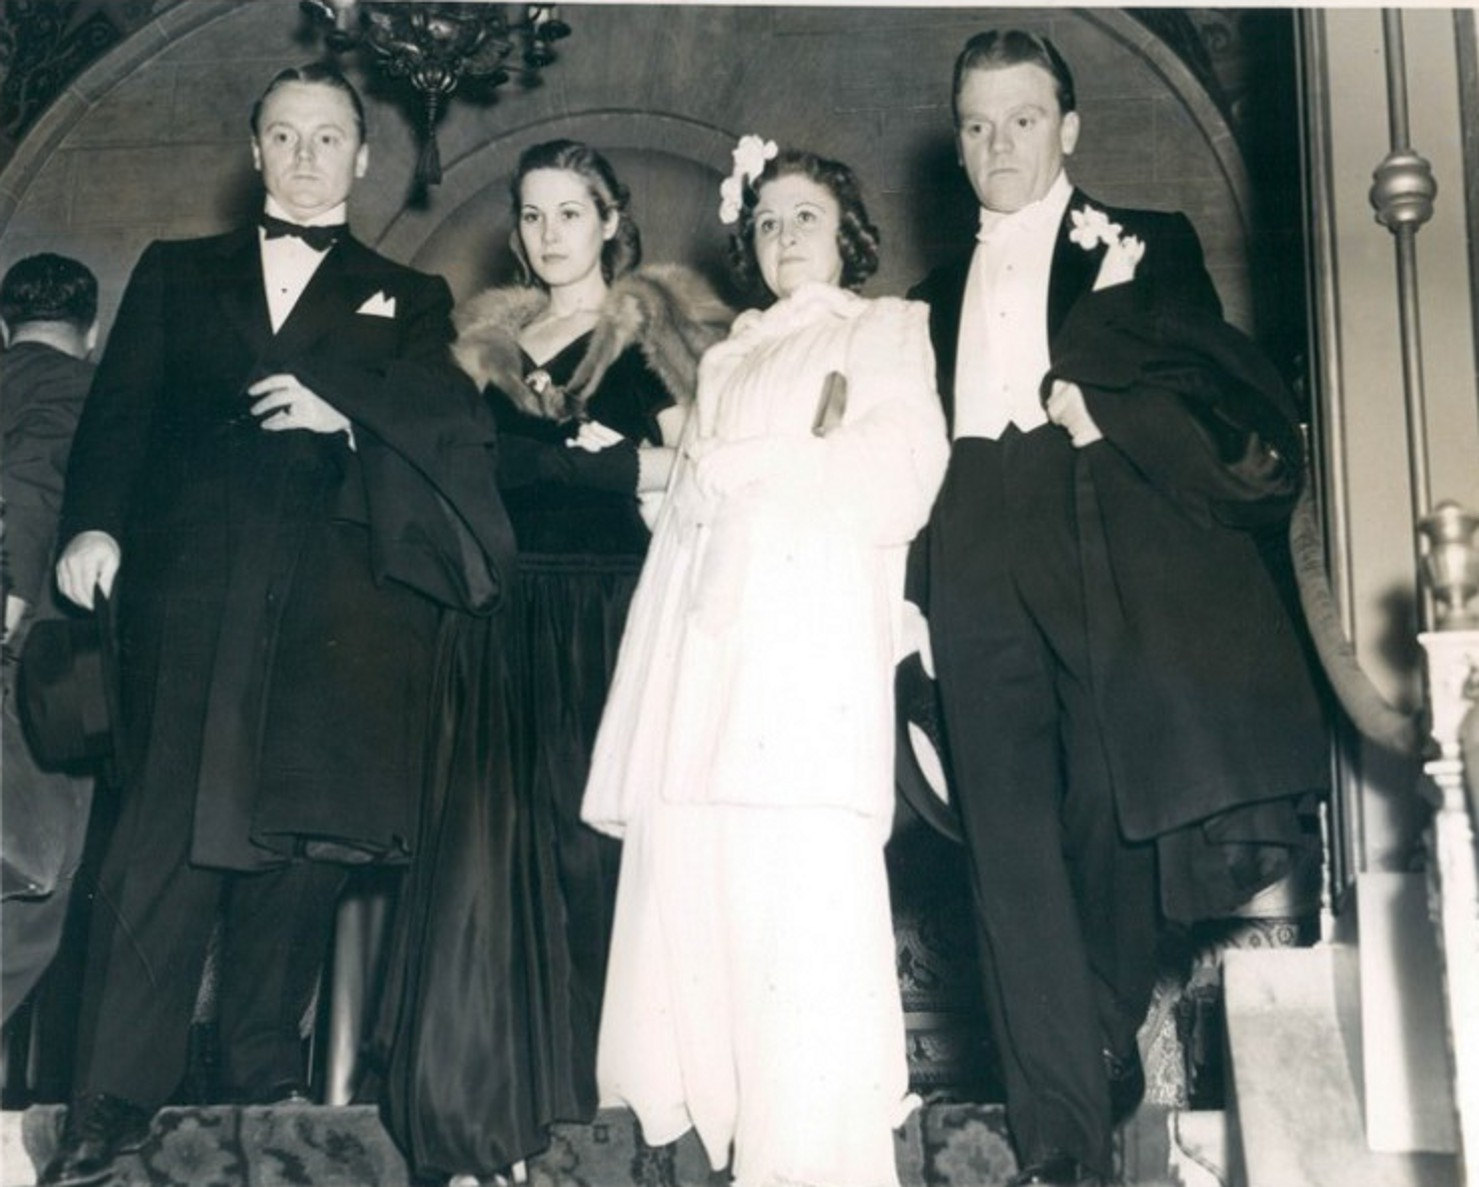 Classic Hollywood #9 - James Cagney & Brother William Cagney With Their Wives